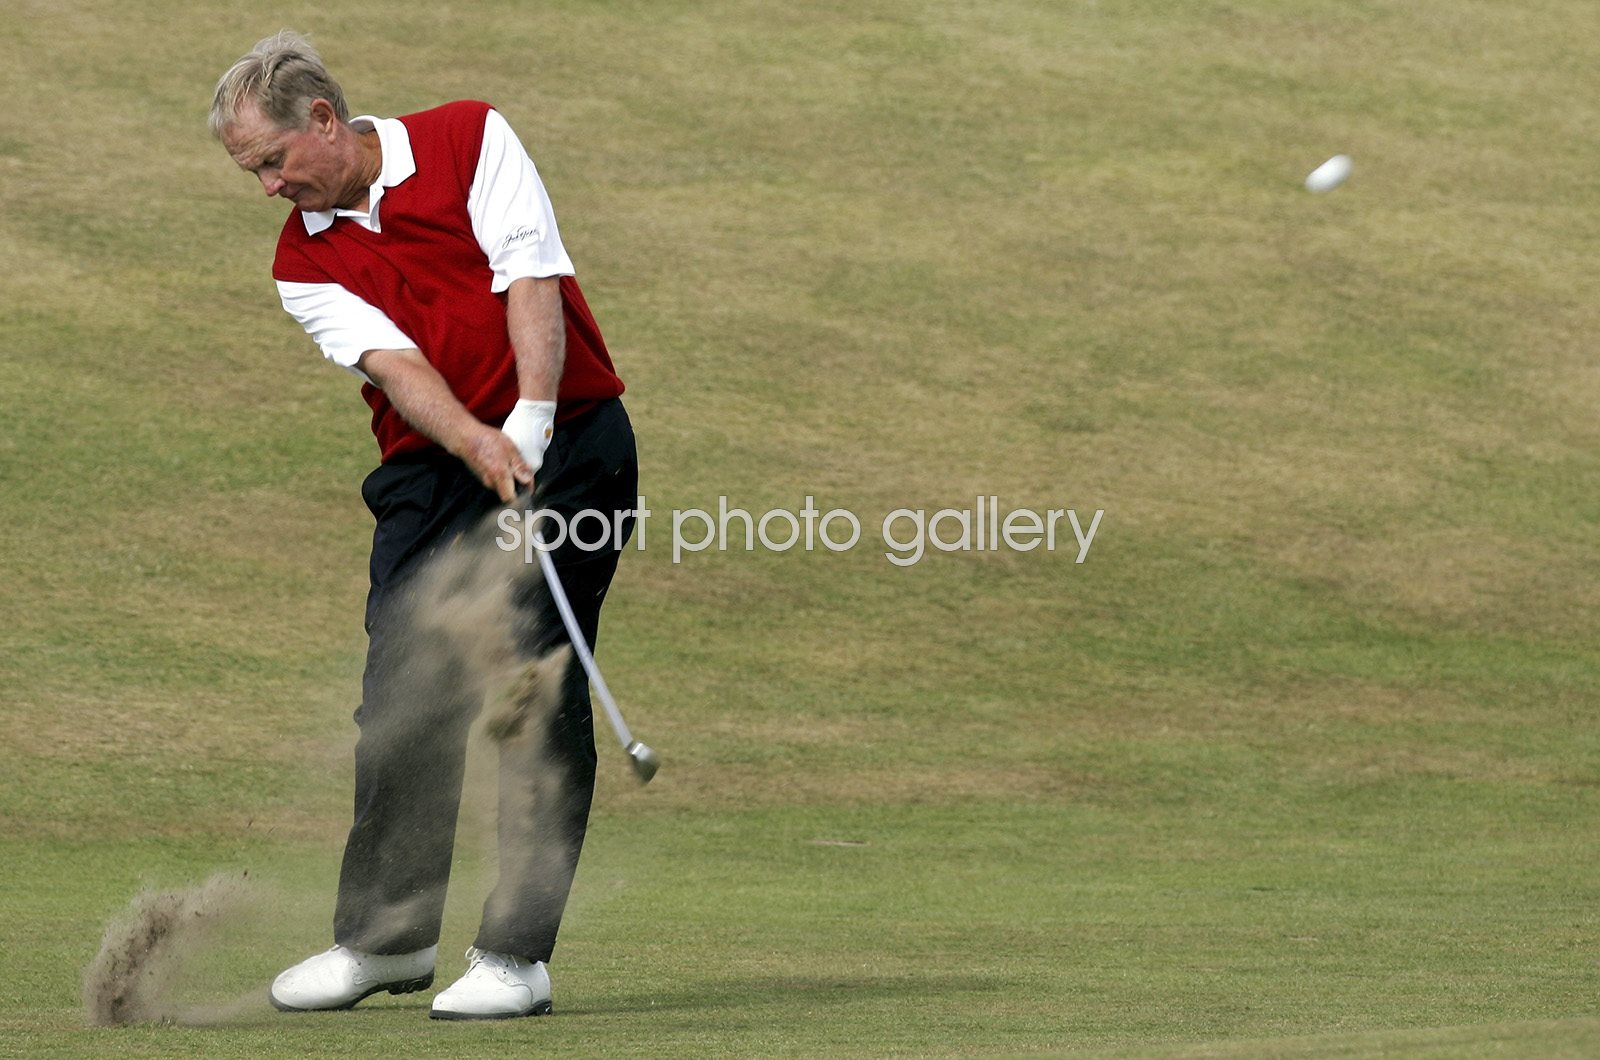 Jack Nicklaus Final Open Round St Andrews 2005